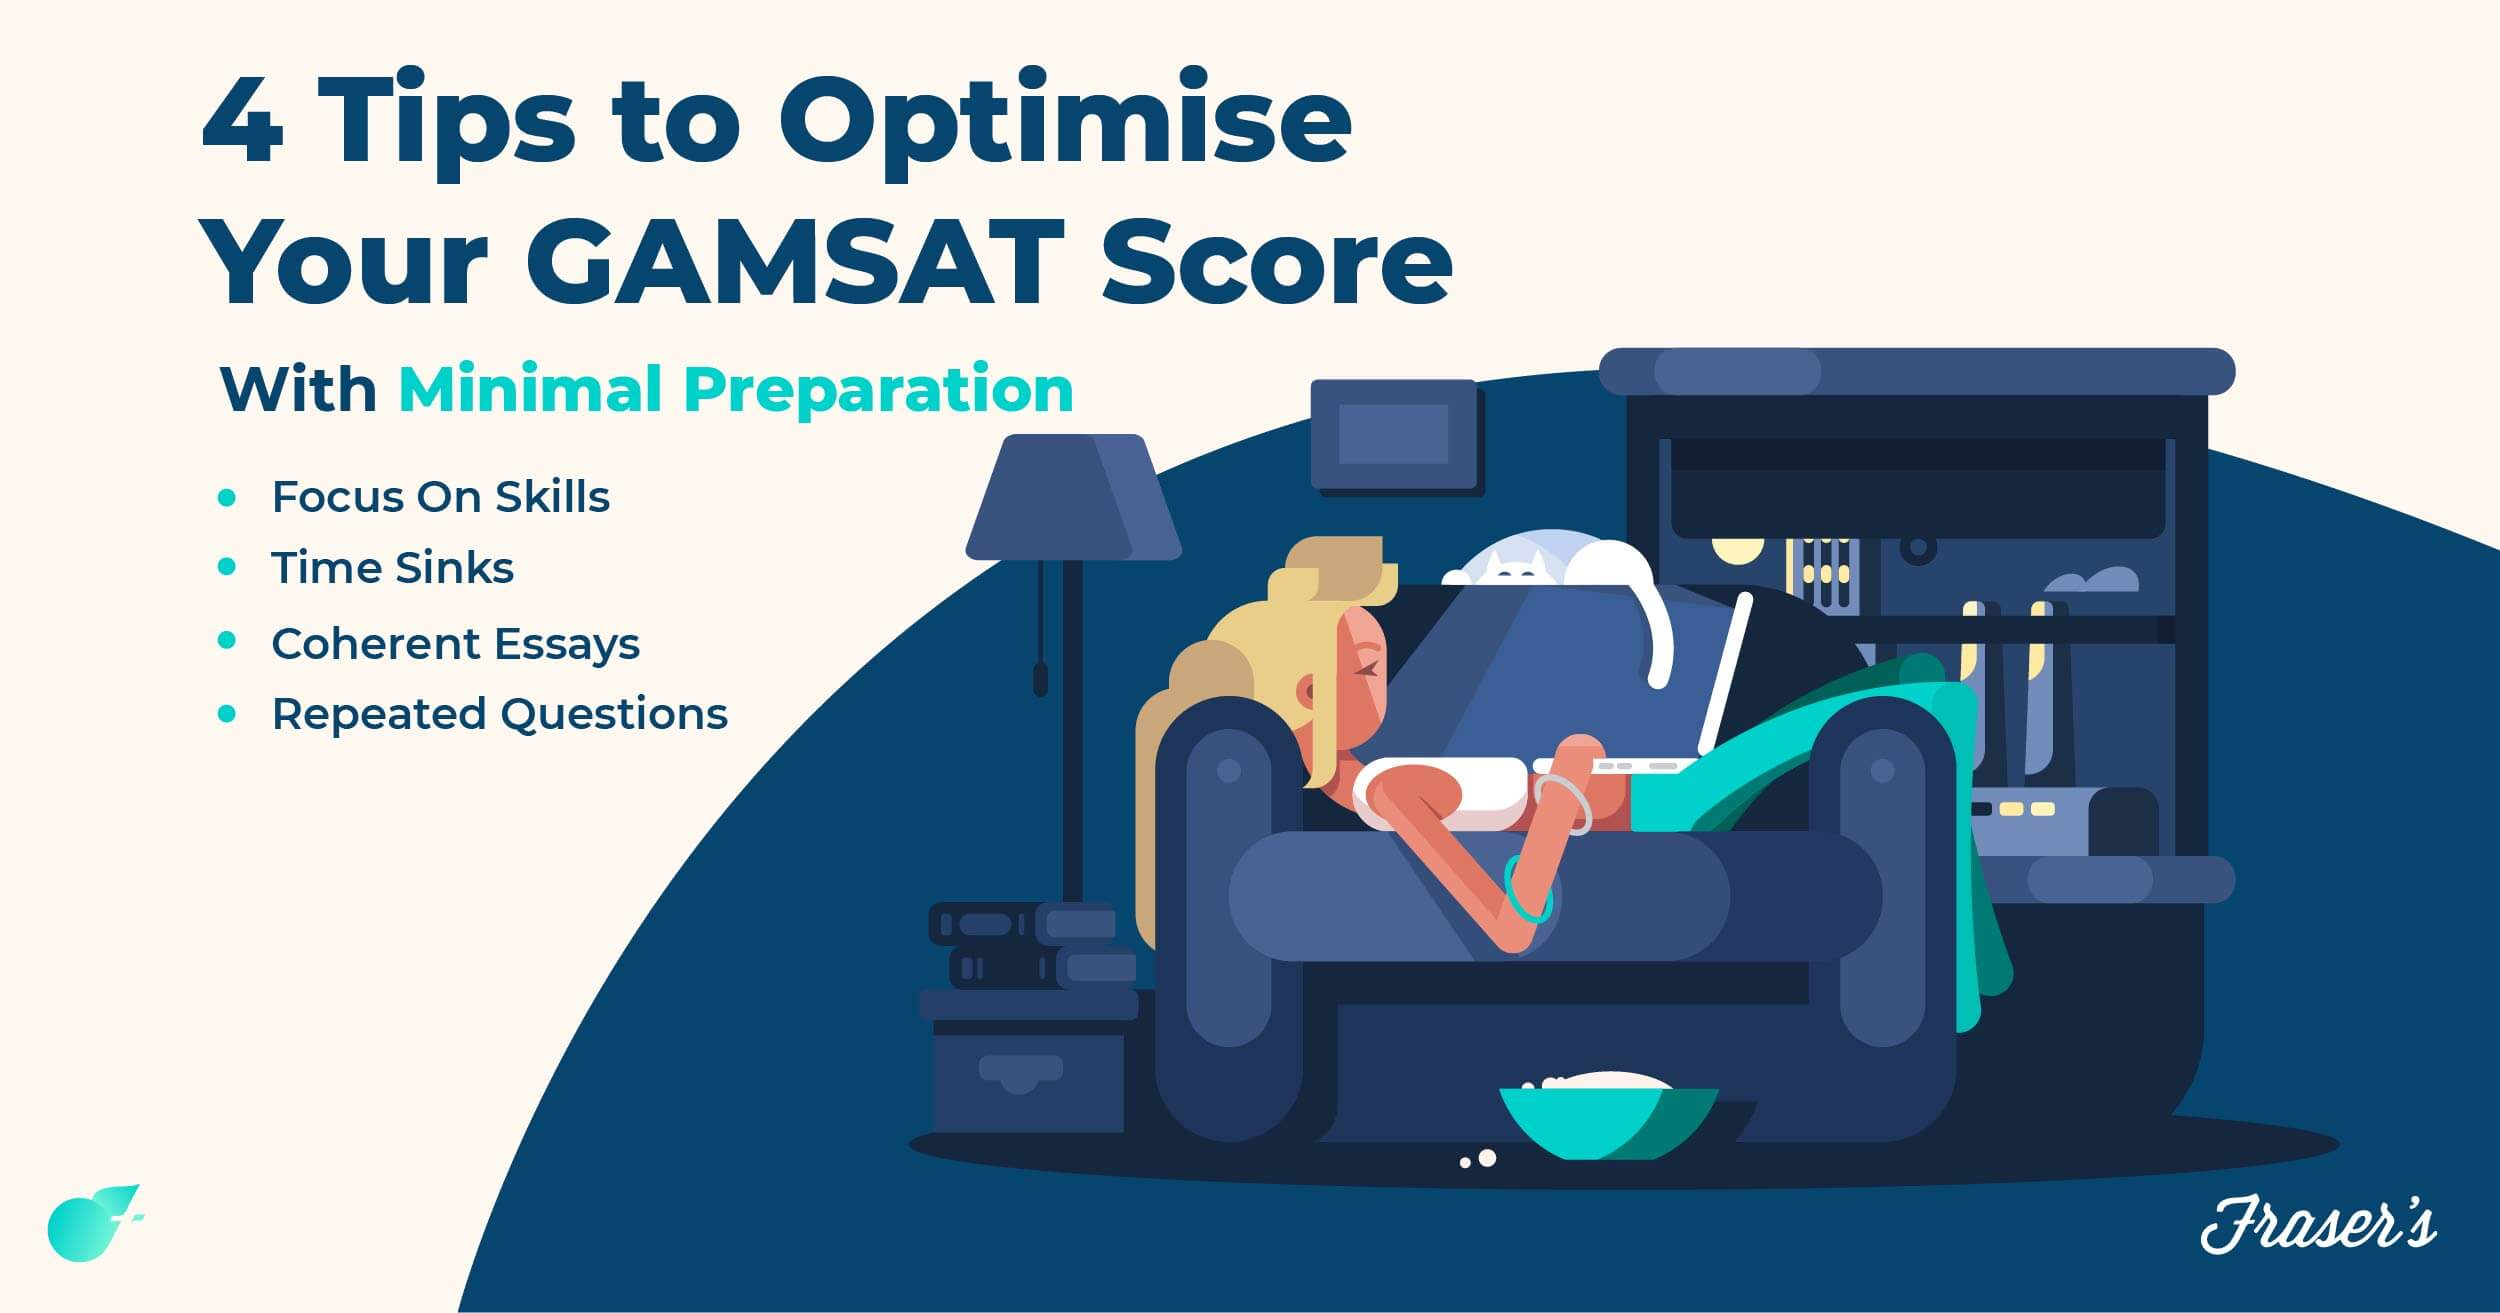 Tips to optimise your gamsat score